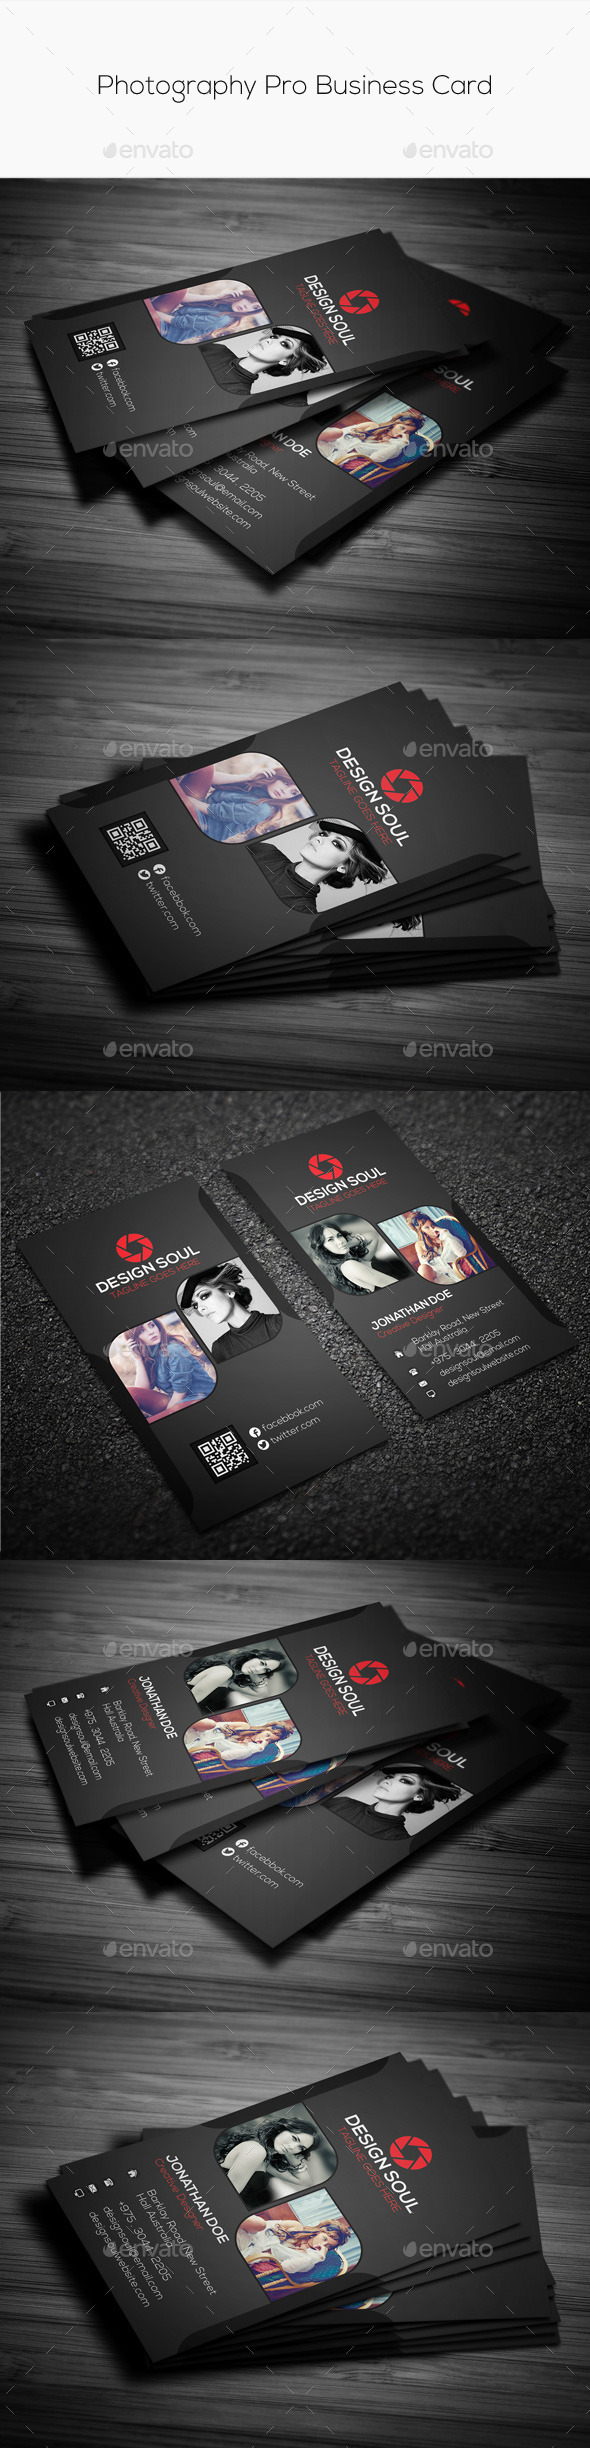 GraphicRiver Photography Pro Business Card 9185808